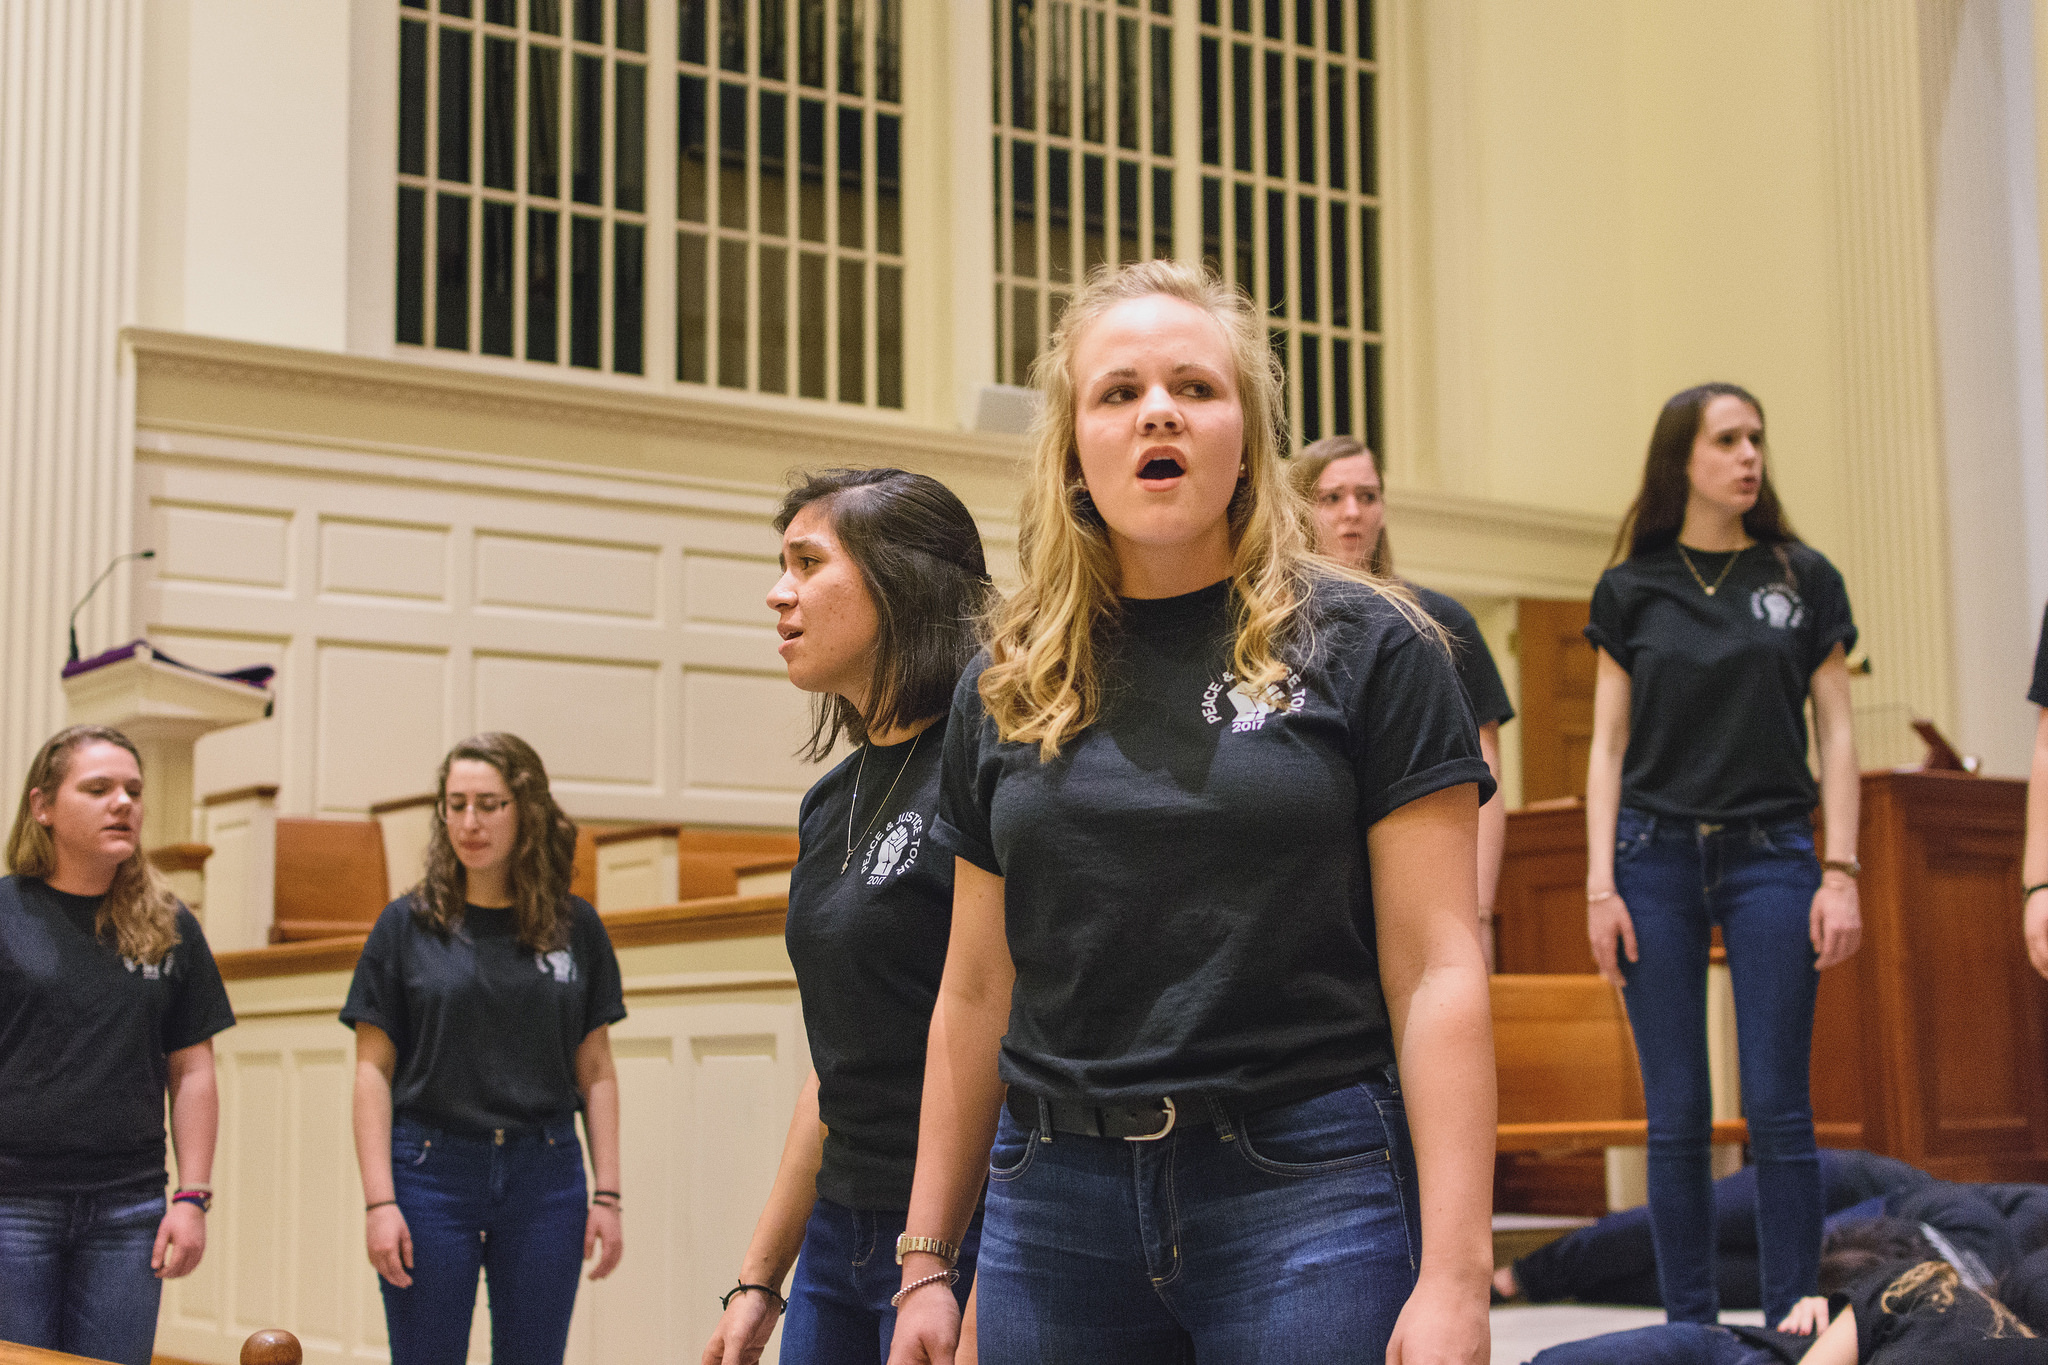 Kelly Reymann performs in a College Choir performance last spring (Photo courtesy of Gettysburg College)